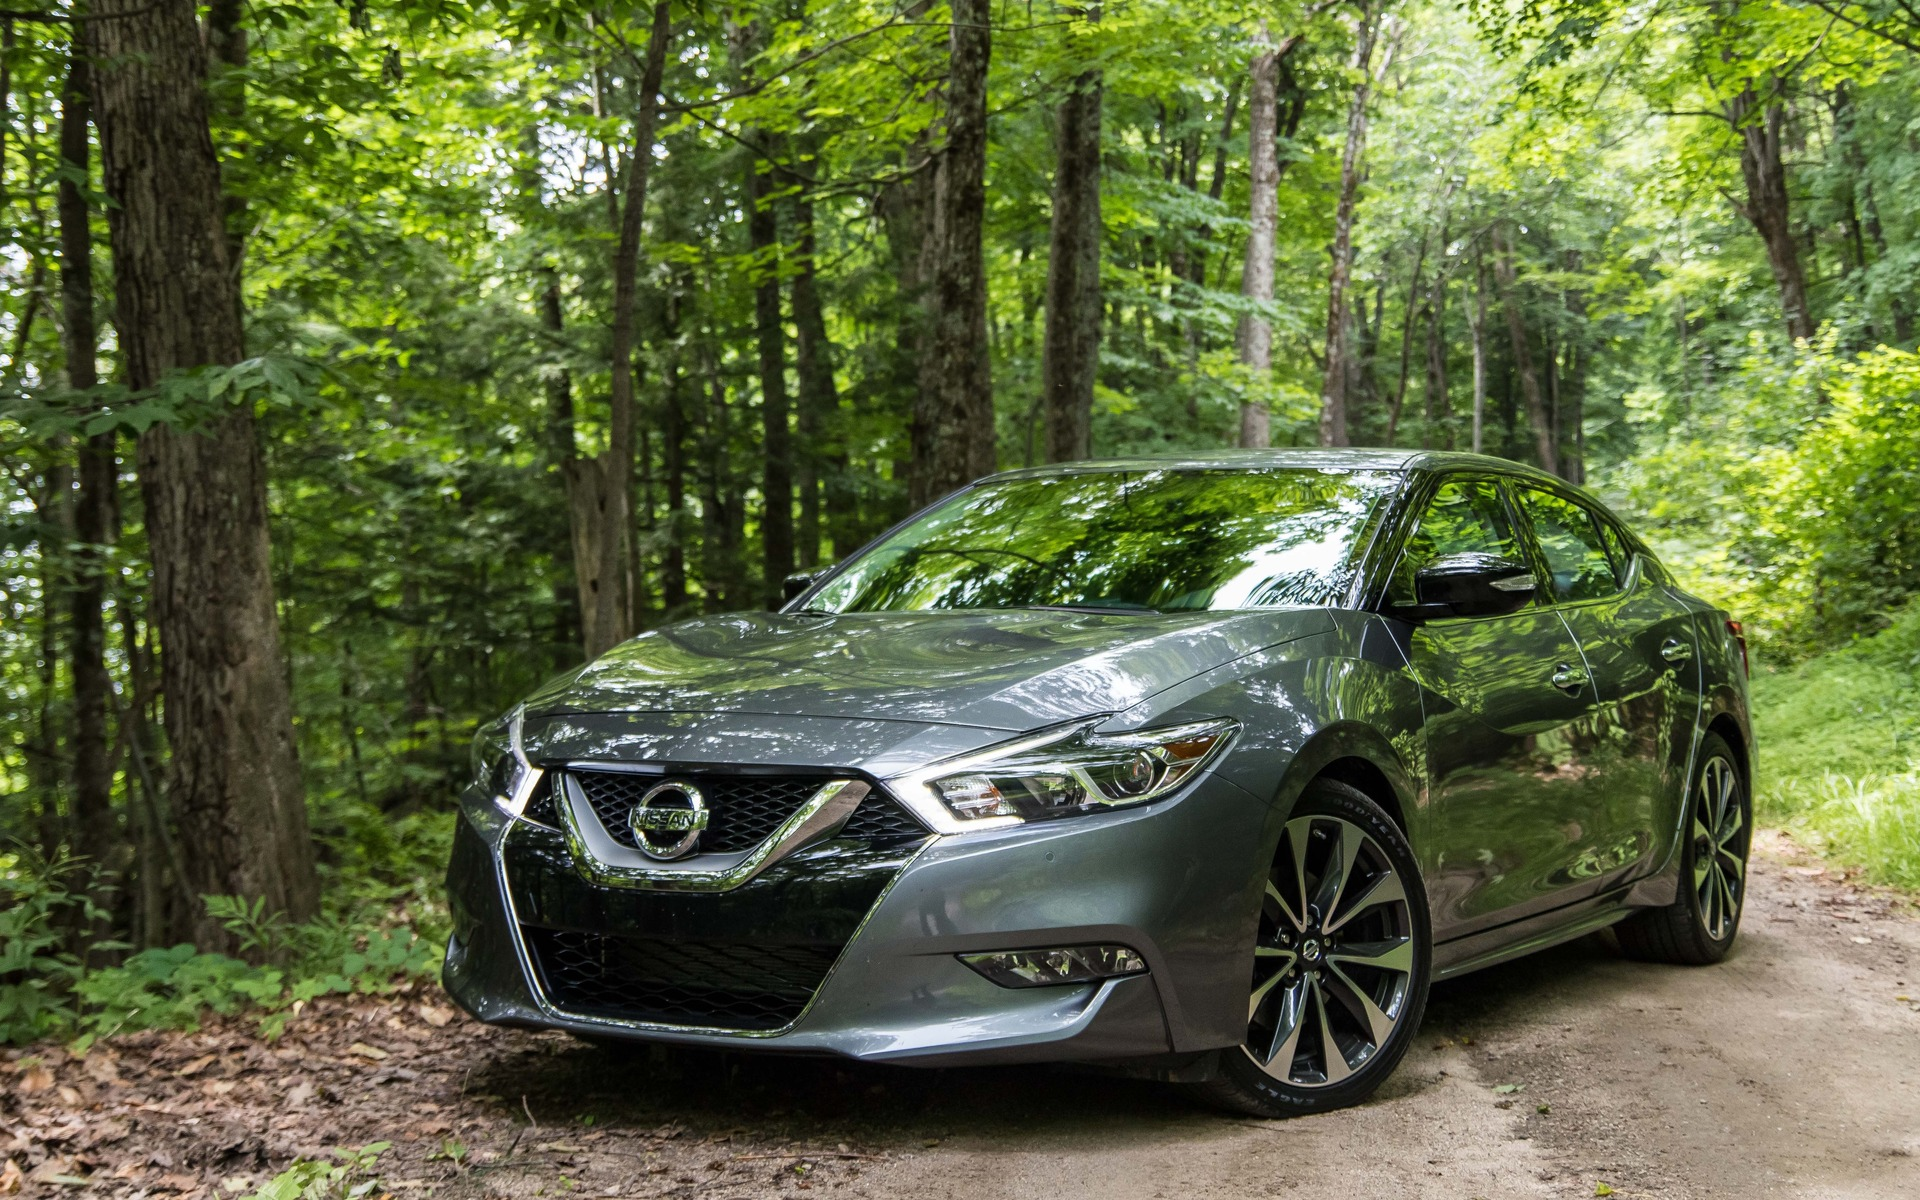 2016 Nissan Maxima -  The style is all-new for 2016